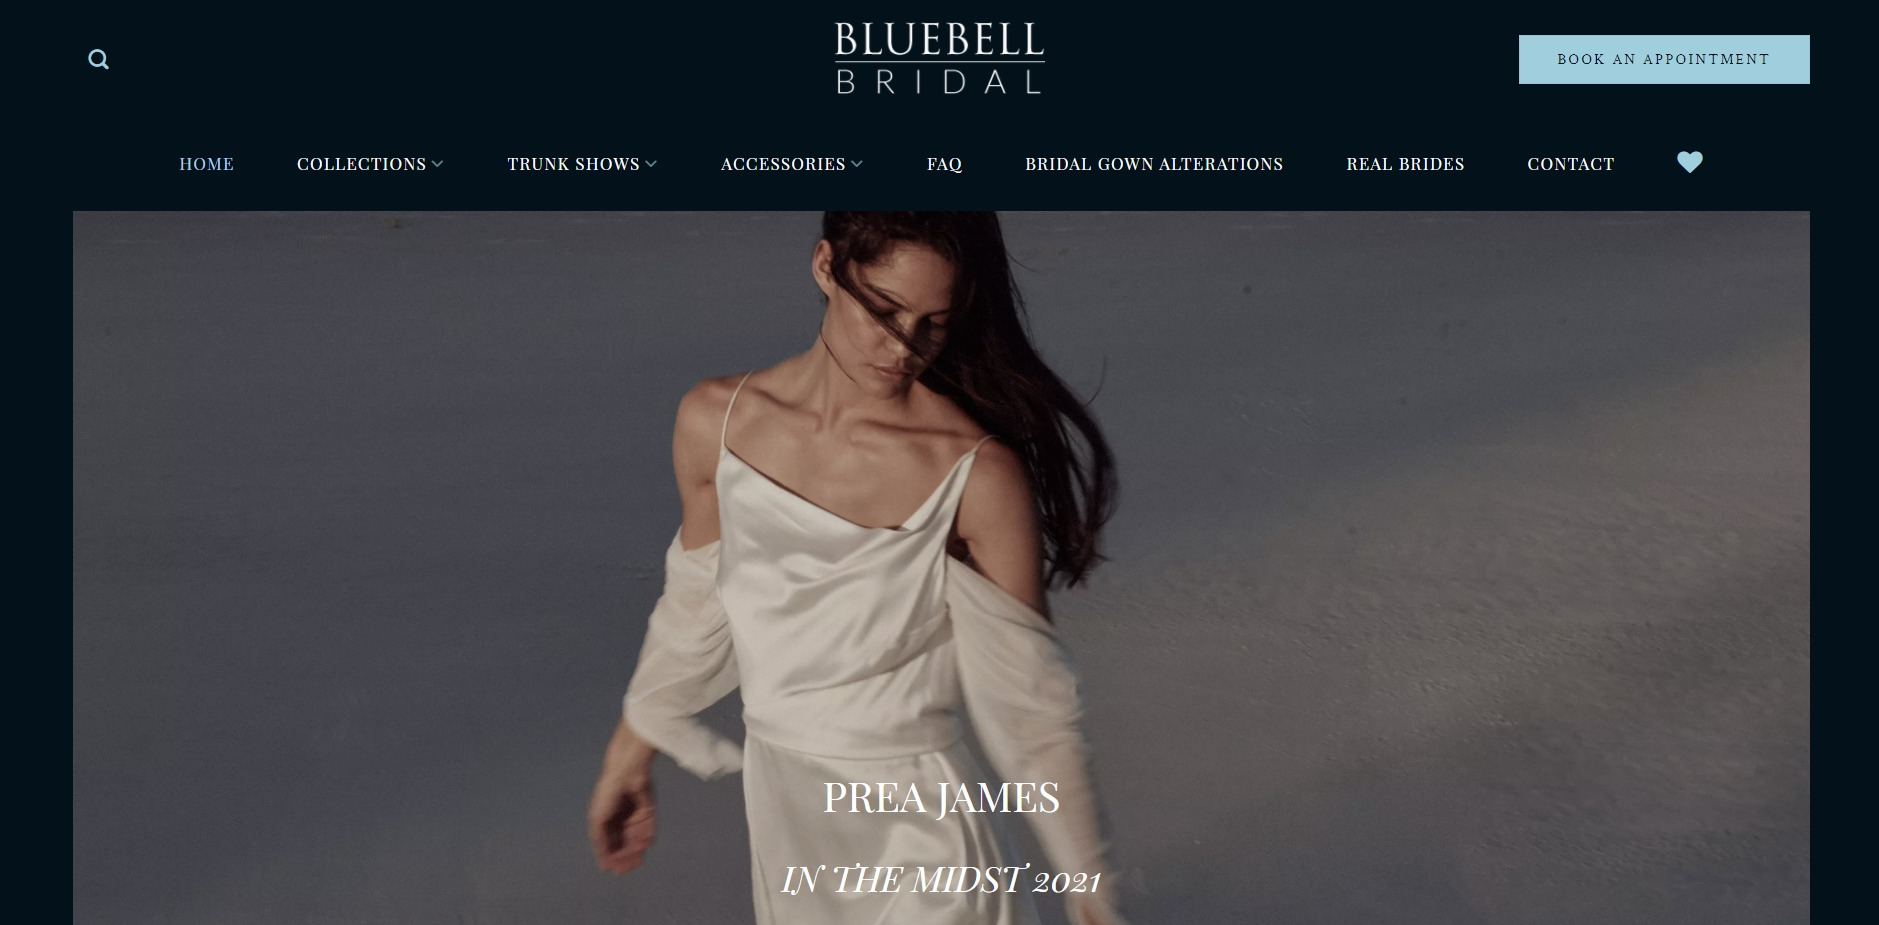 Bluebell Bridal Melbourne